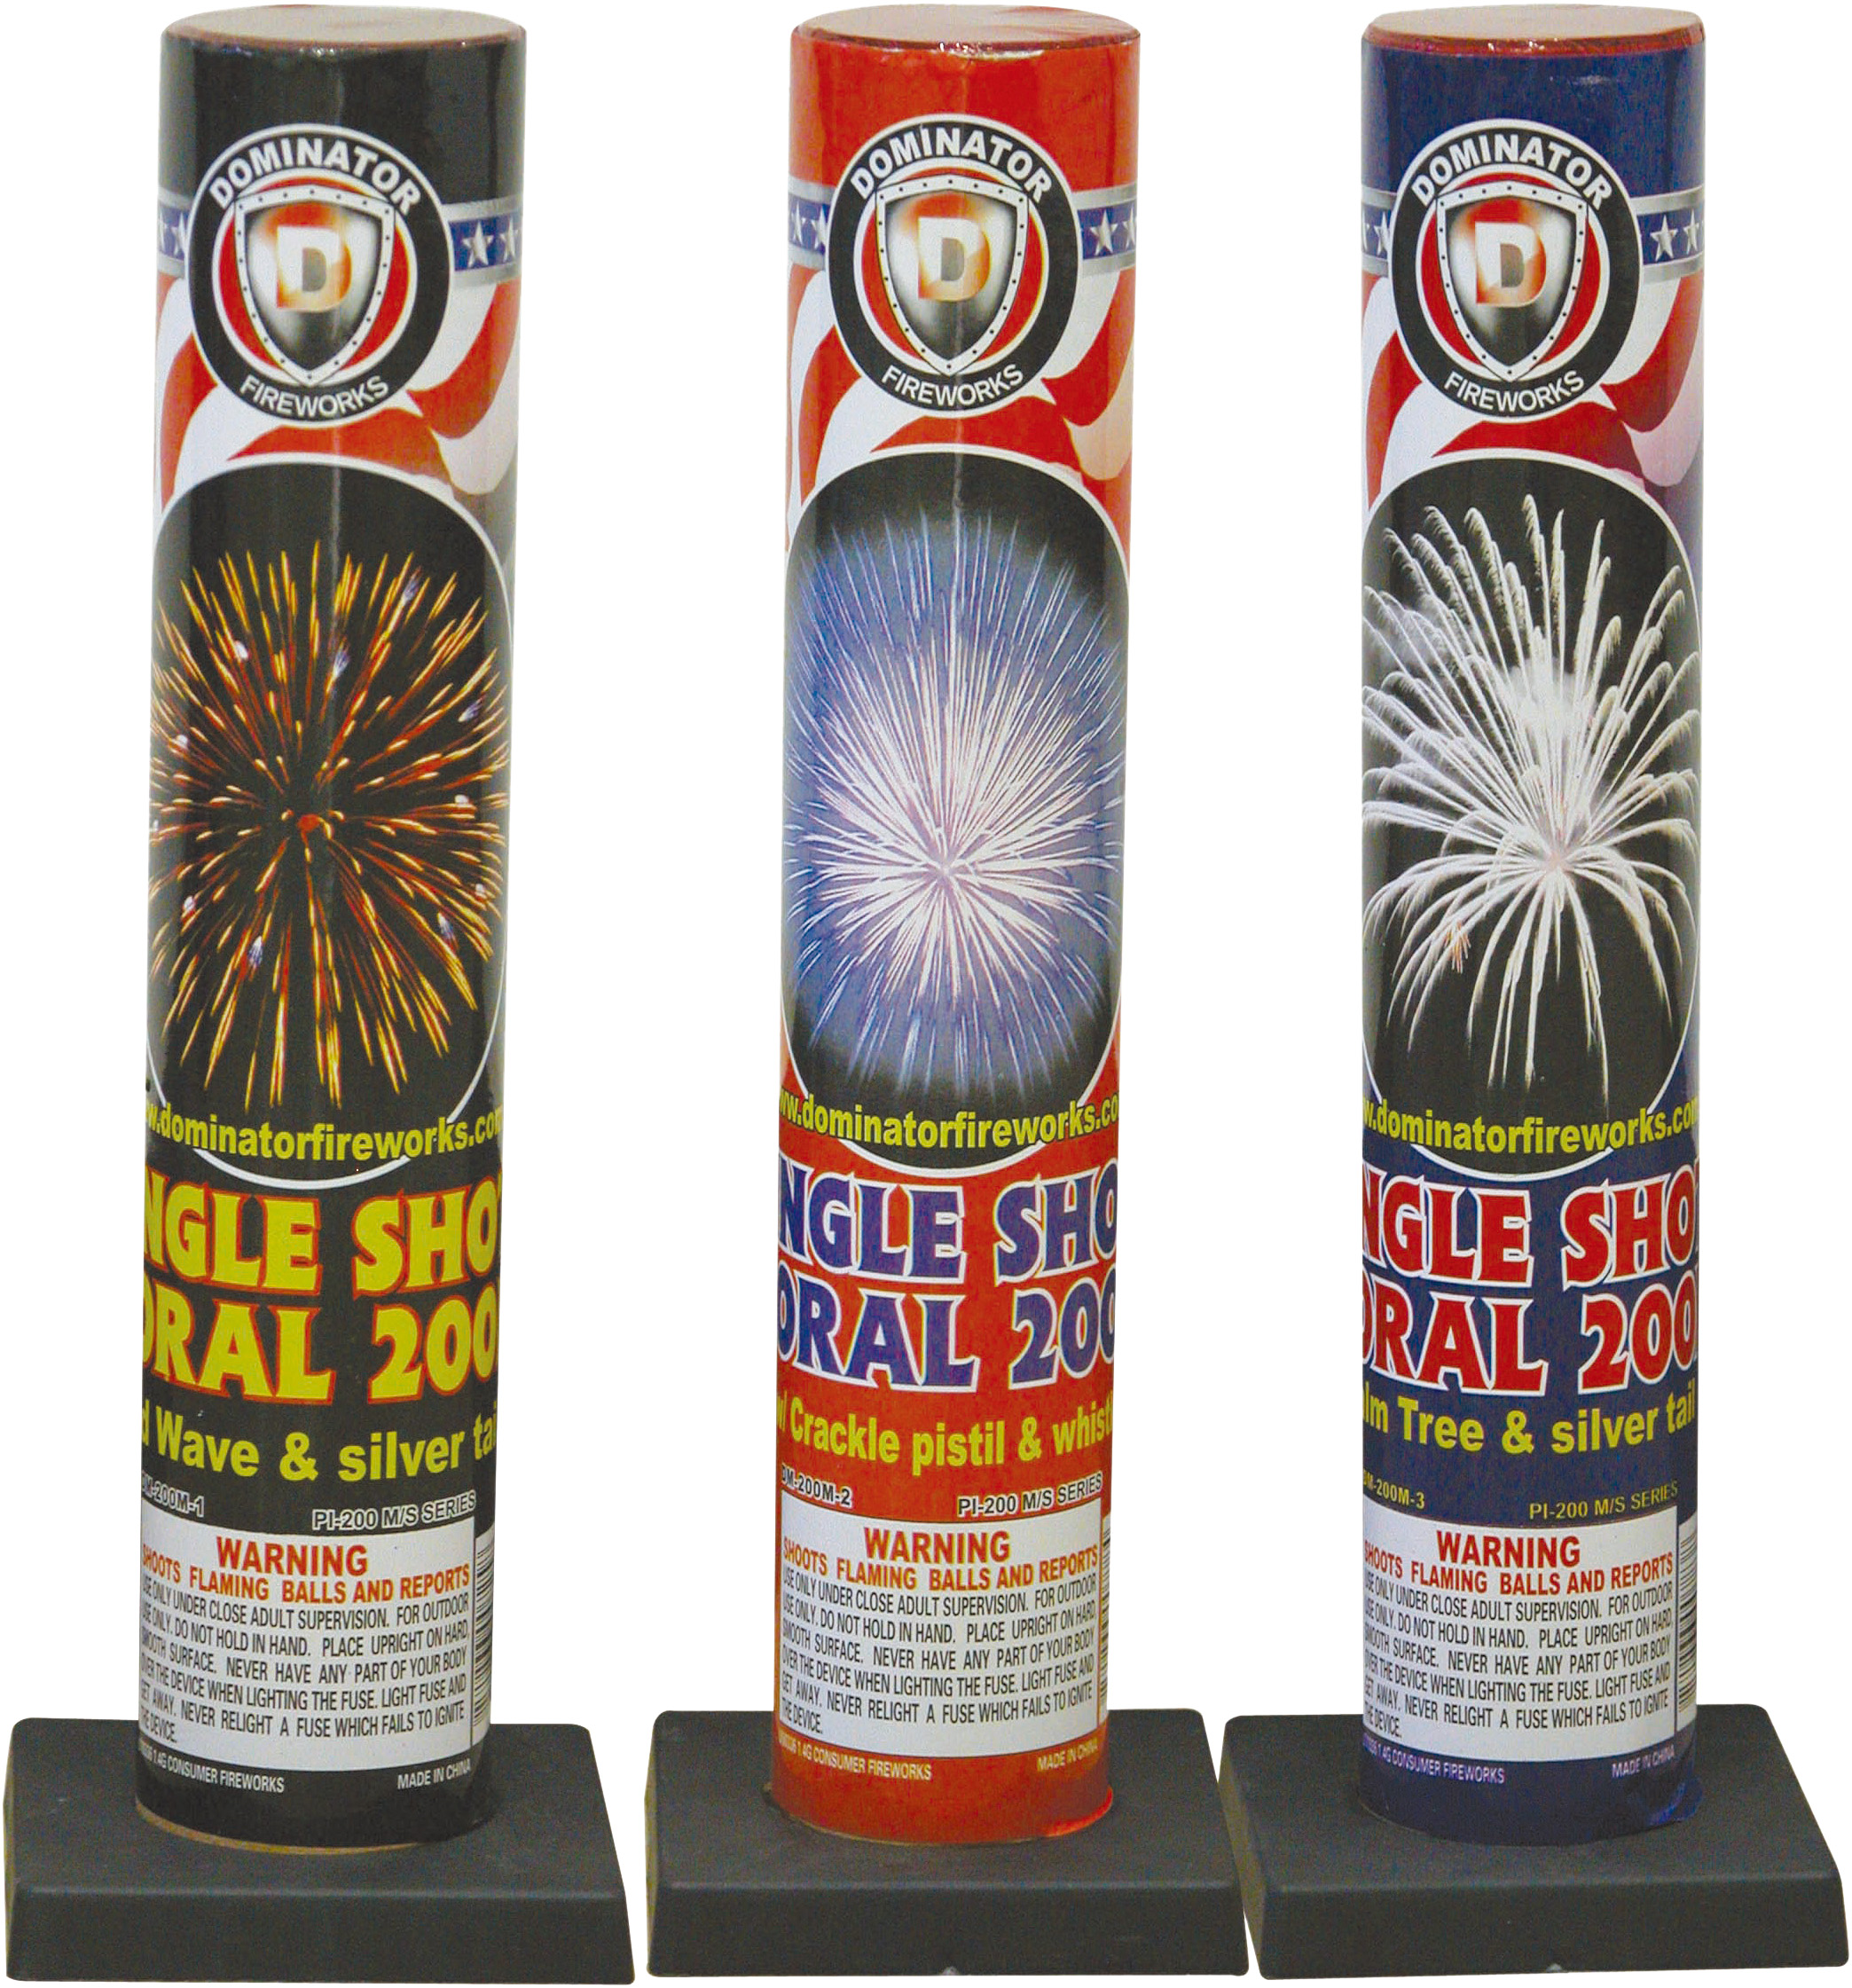 Dominator Fireworks - Displays, Events, Shows, Interactive